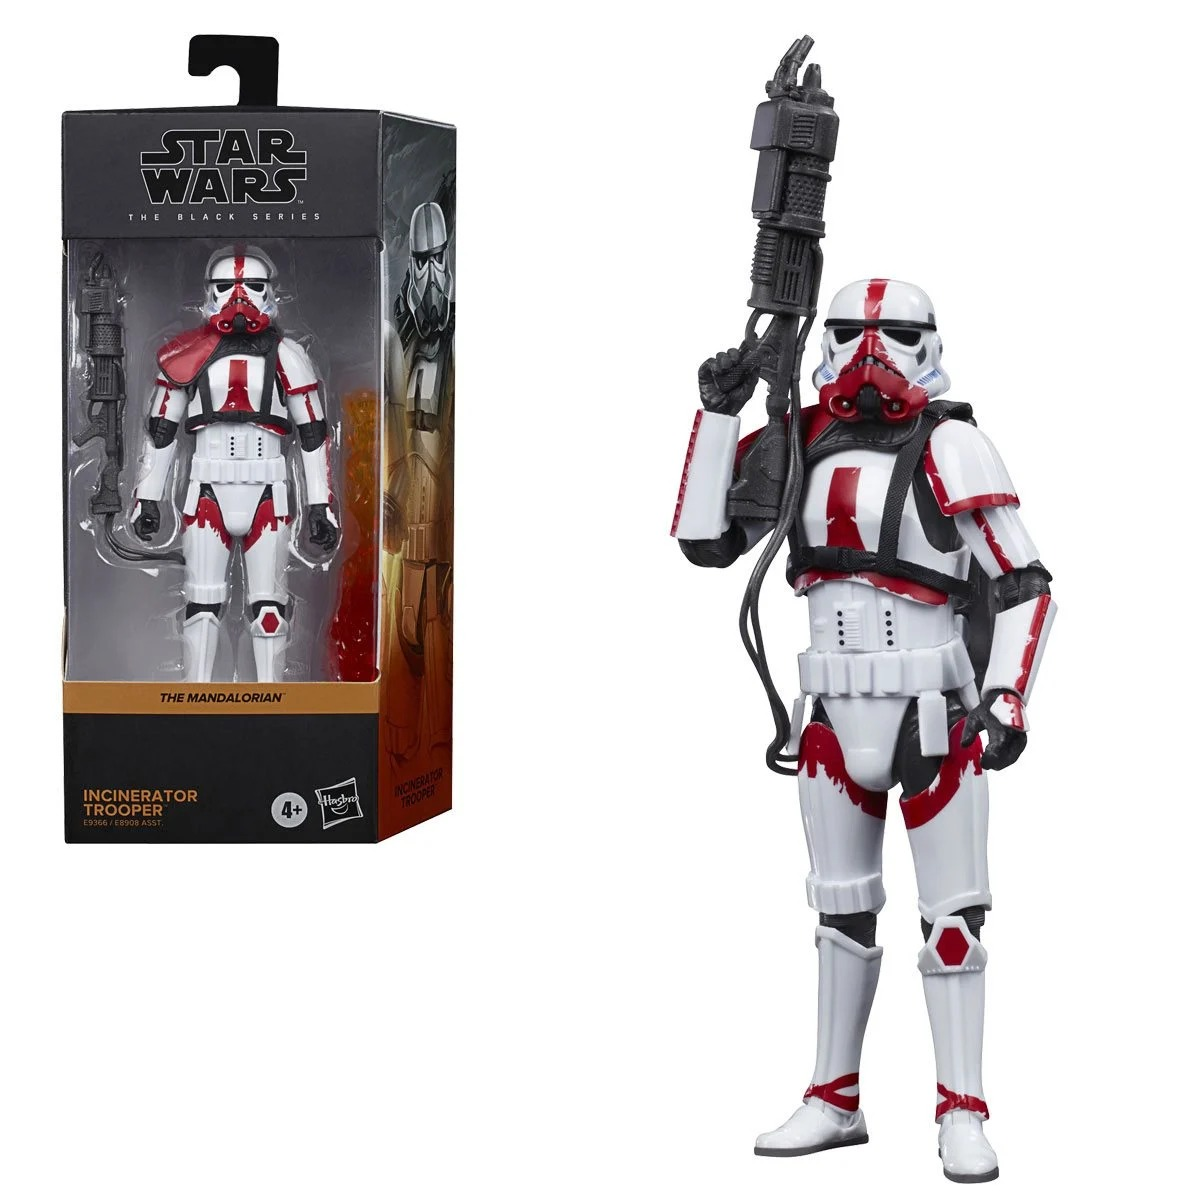 Action Figure Incinerator Trooper: Star Wars The Black Series The Mandalorian E9366 - Hasbro